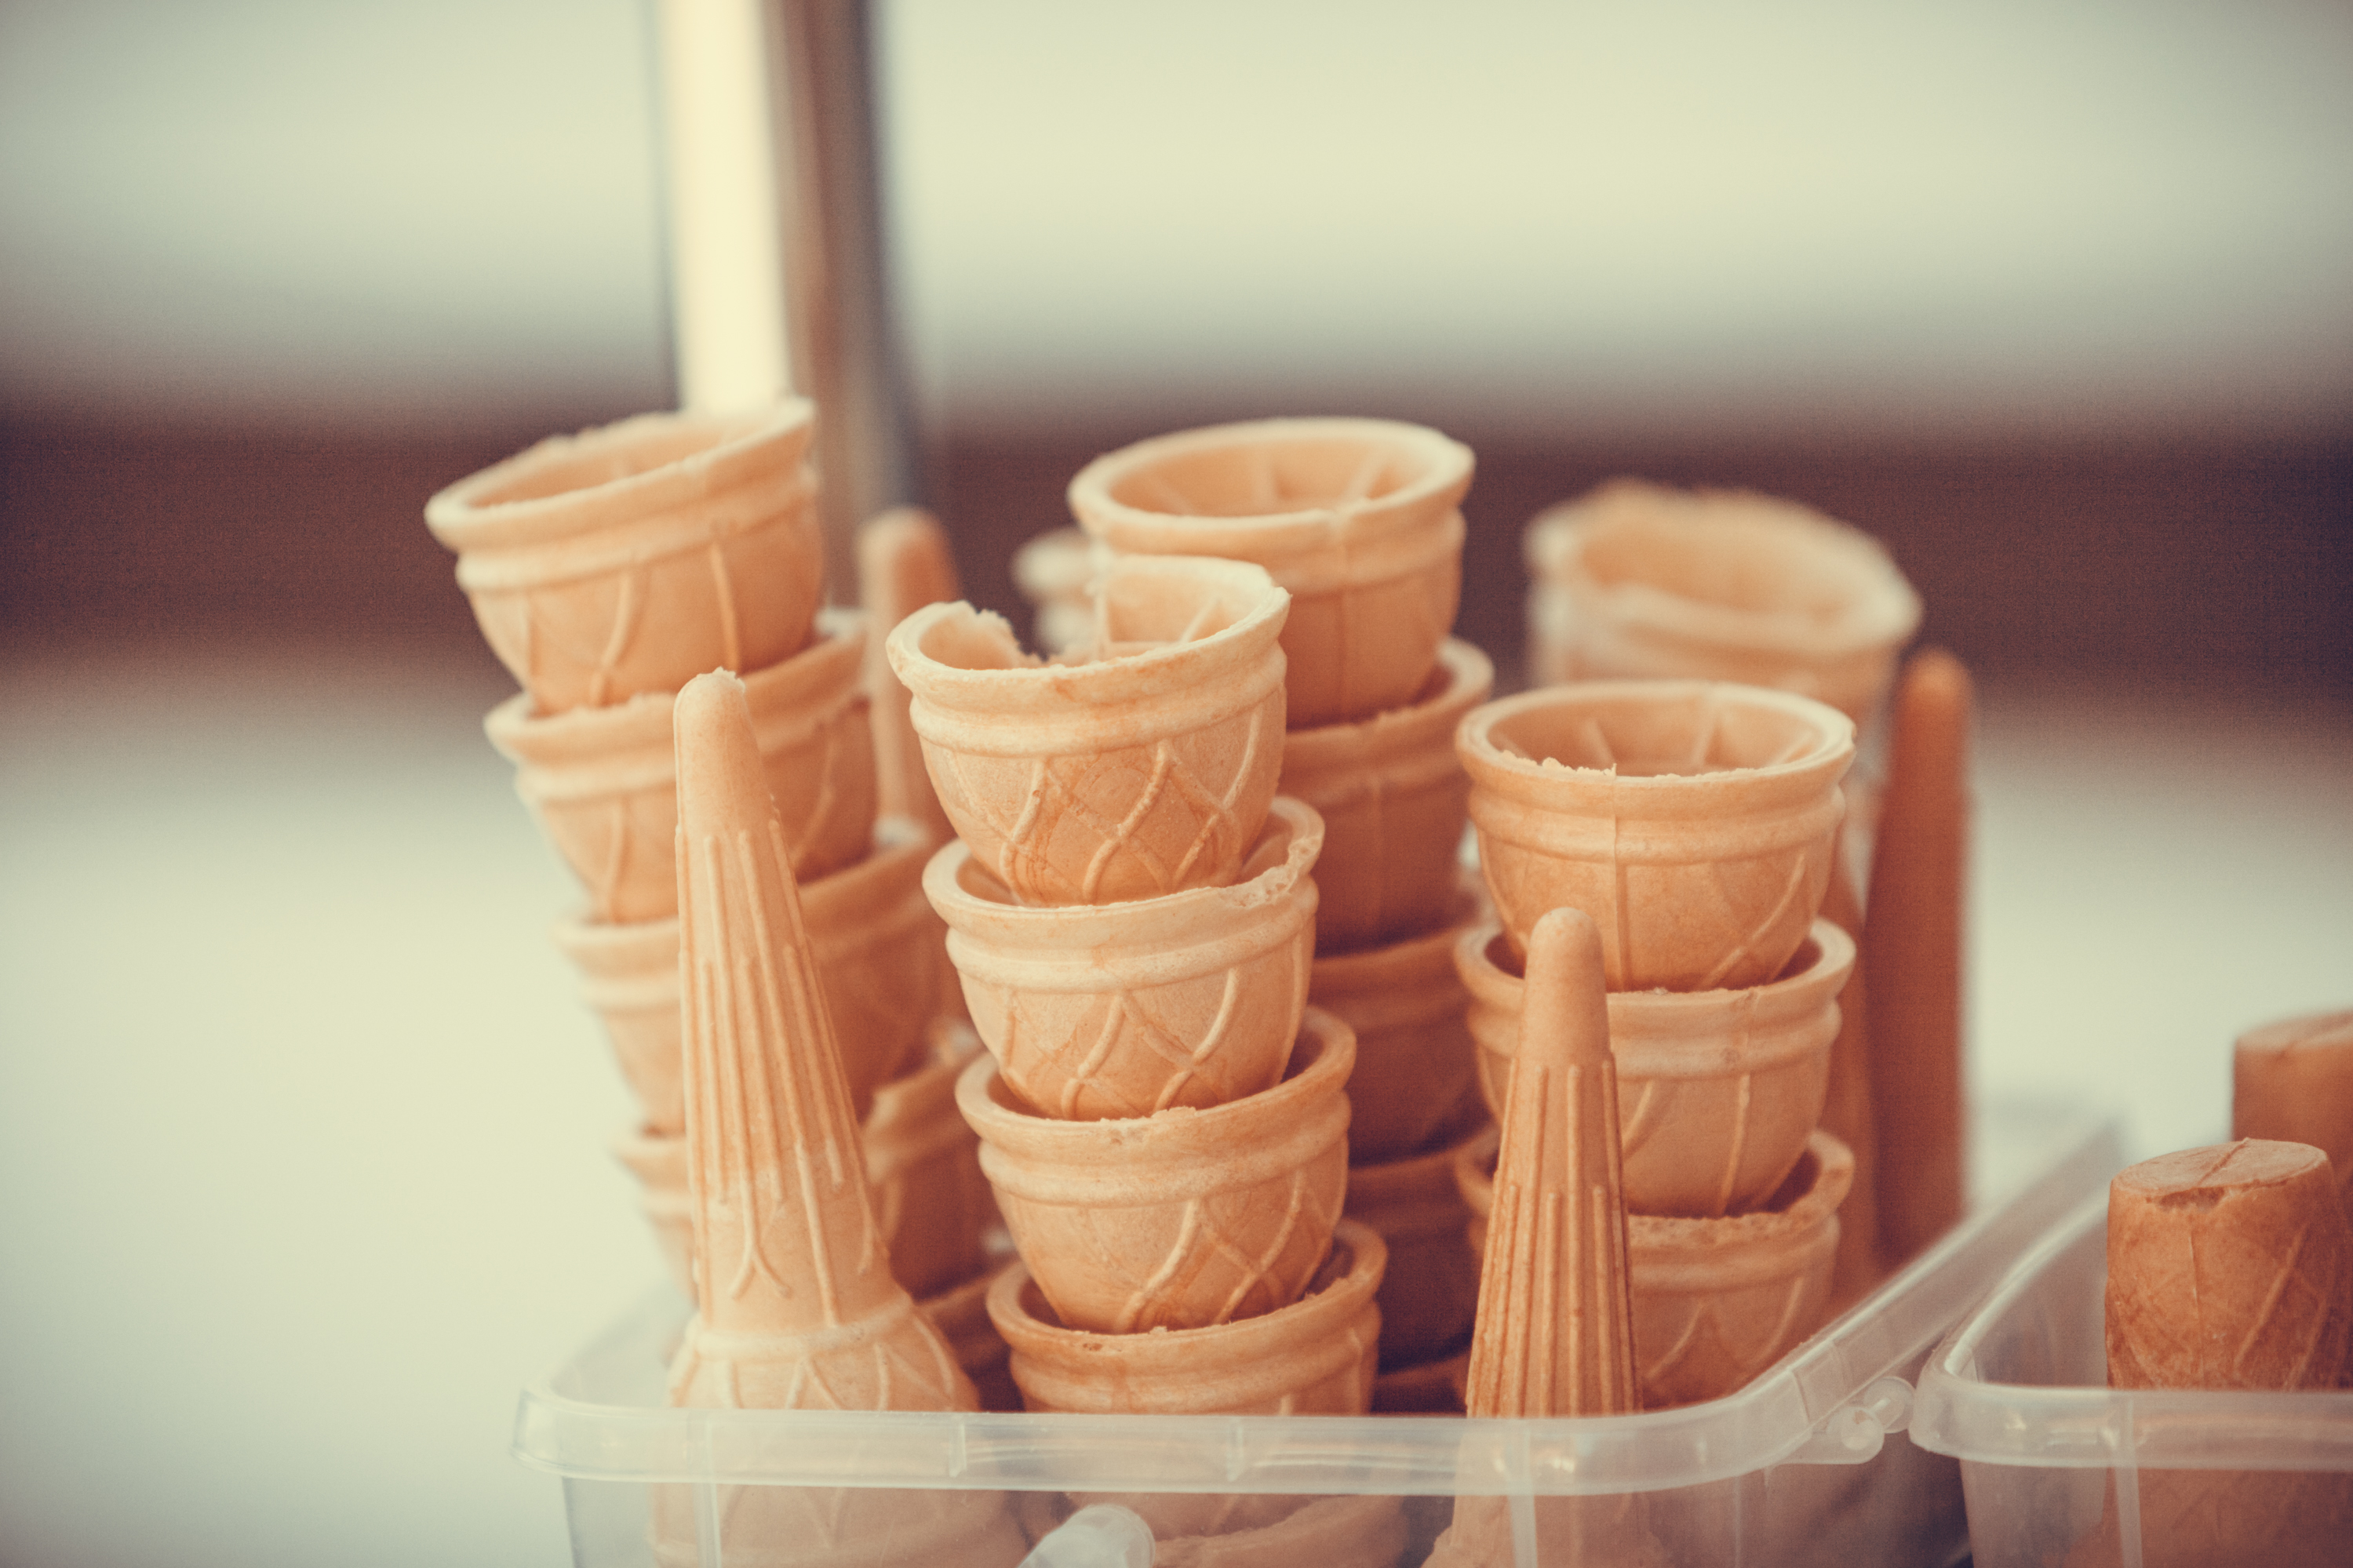 ice-cream-cones-stacked.jpg?mtime=20180524153056#asset:101908